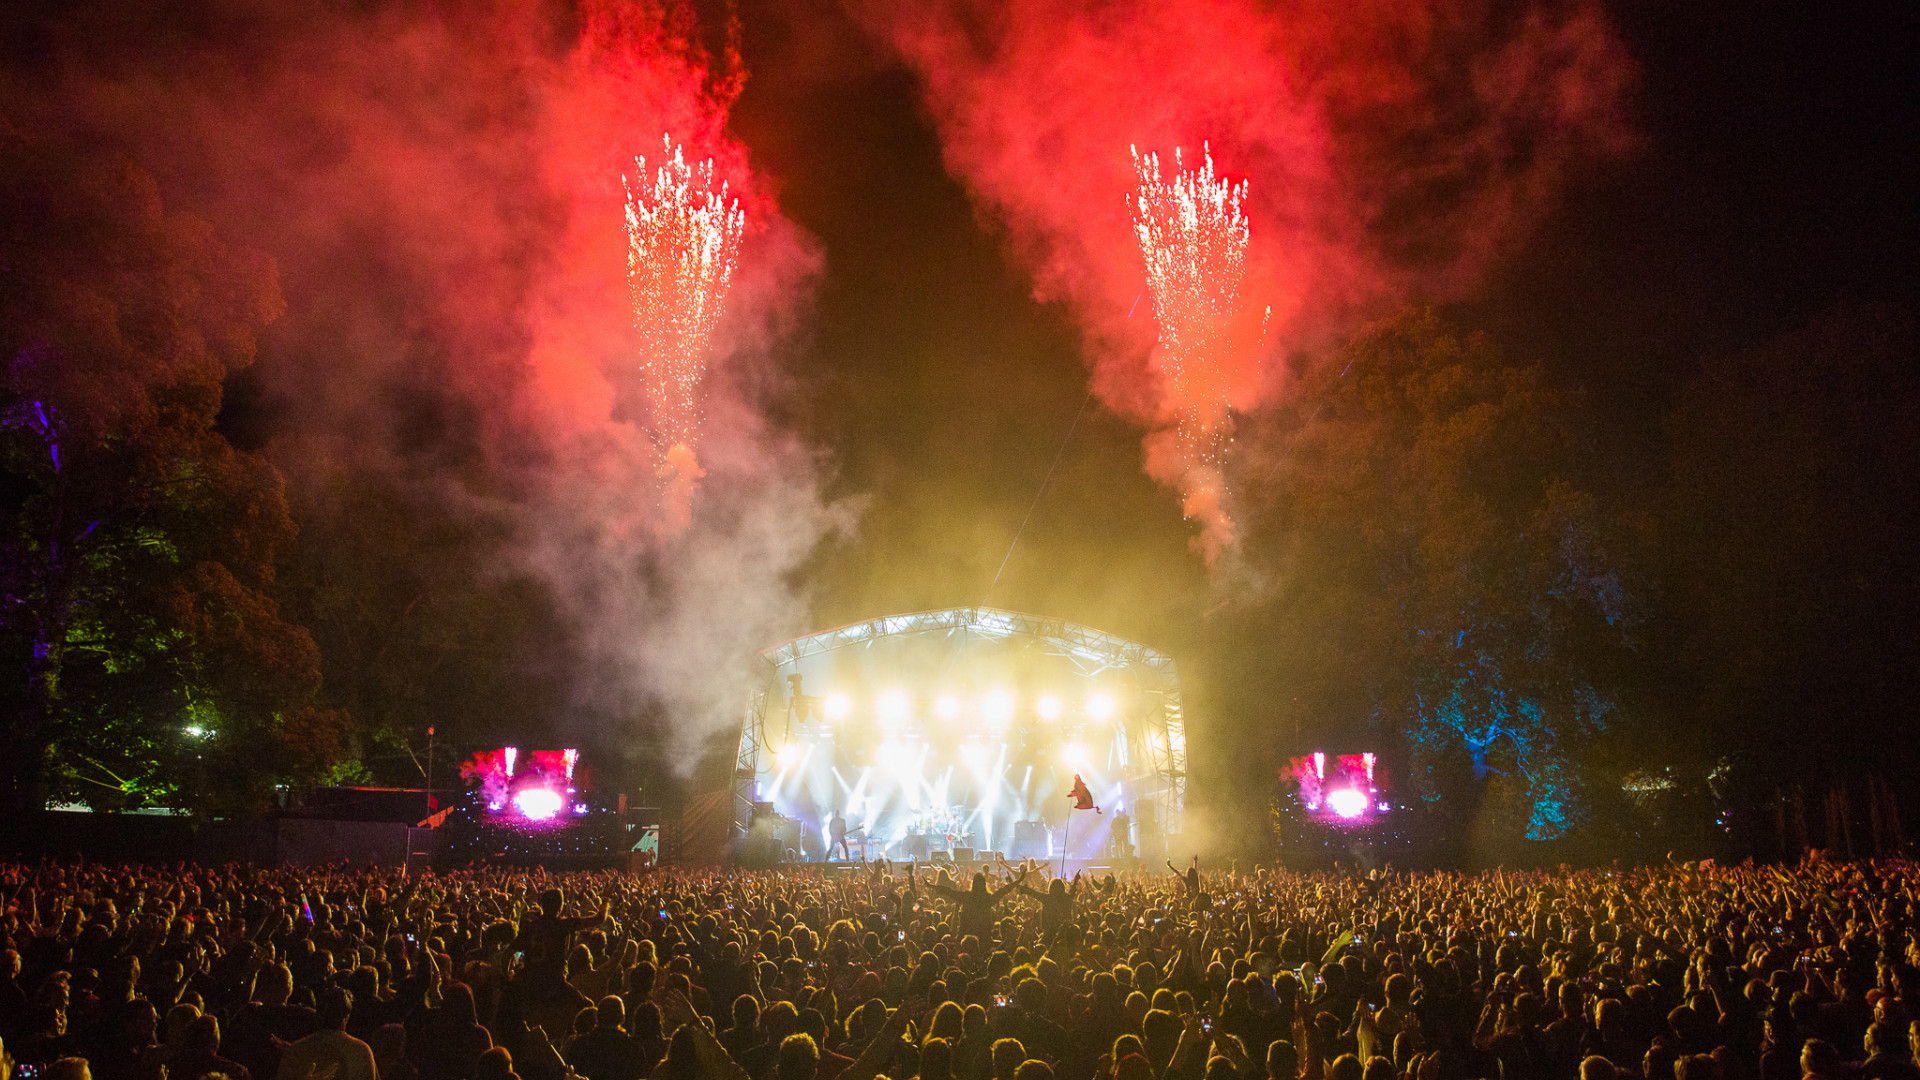 Stereophonics at Kendal Calling 2017